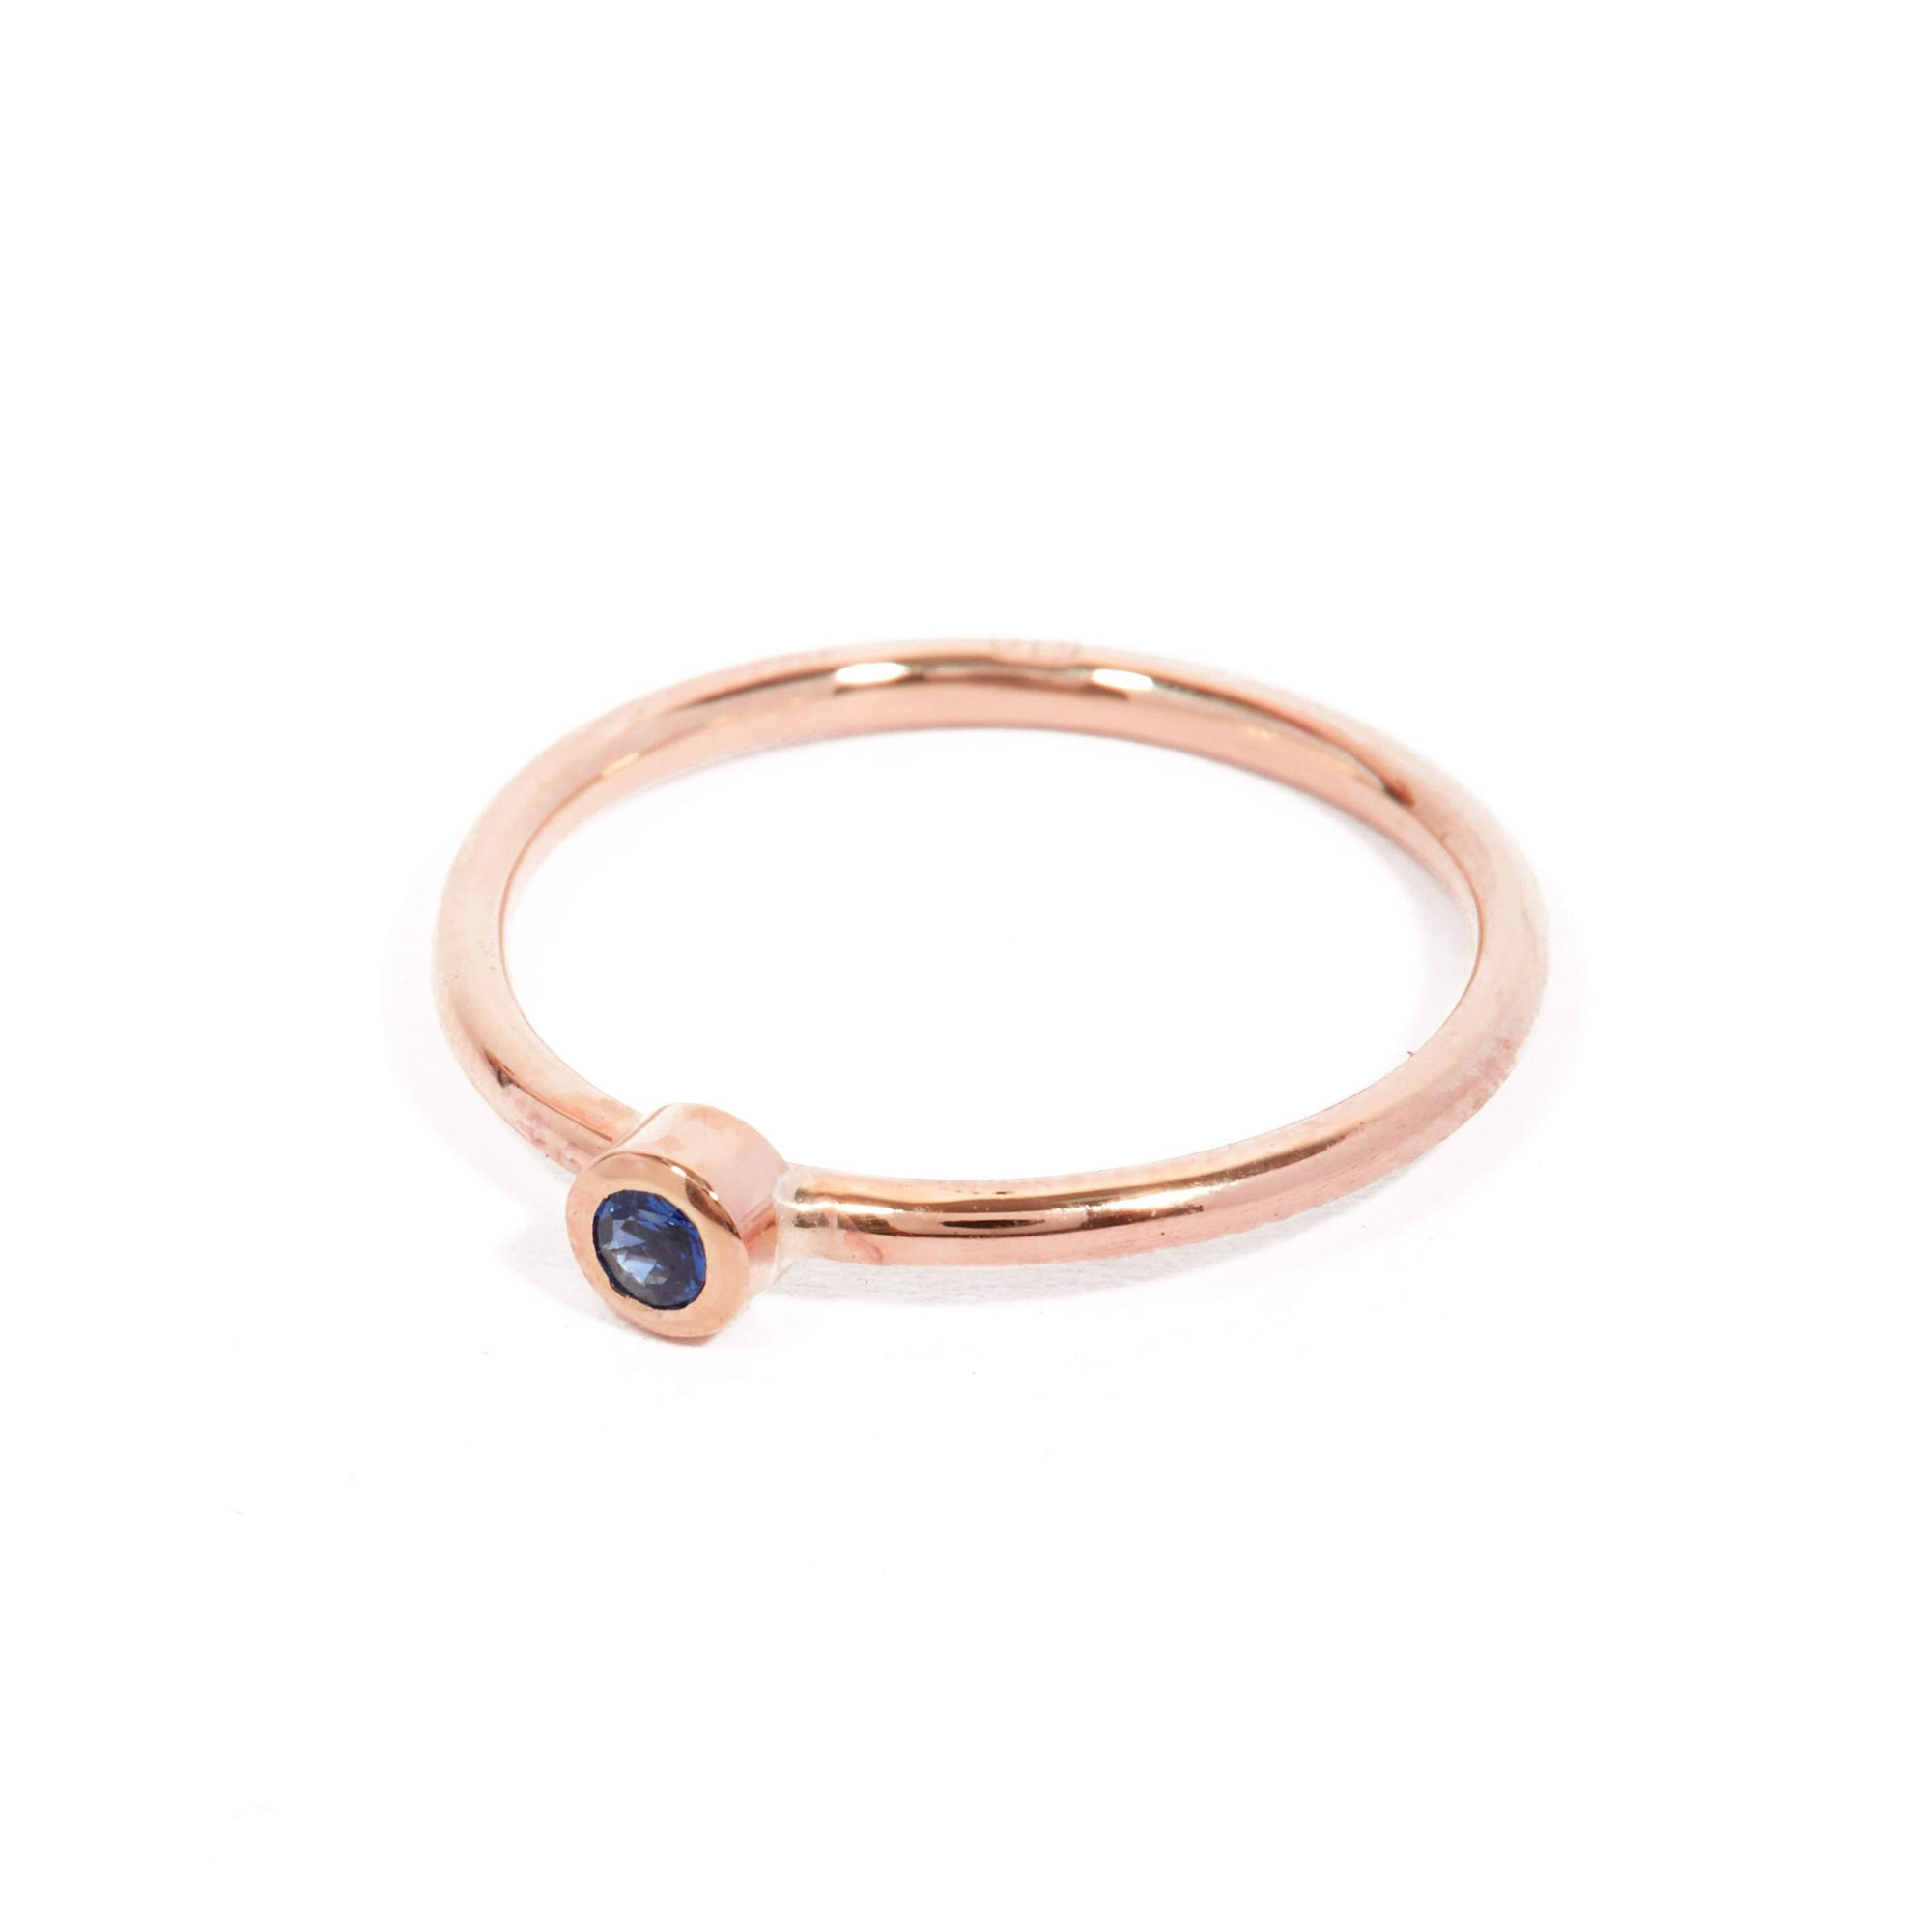 Neo Blue Sapphire Ring - 9ct Rose Gold